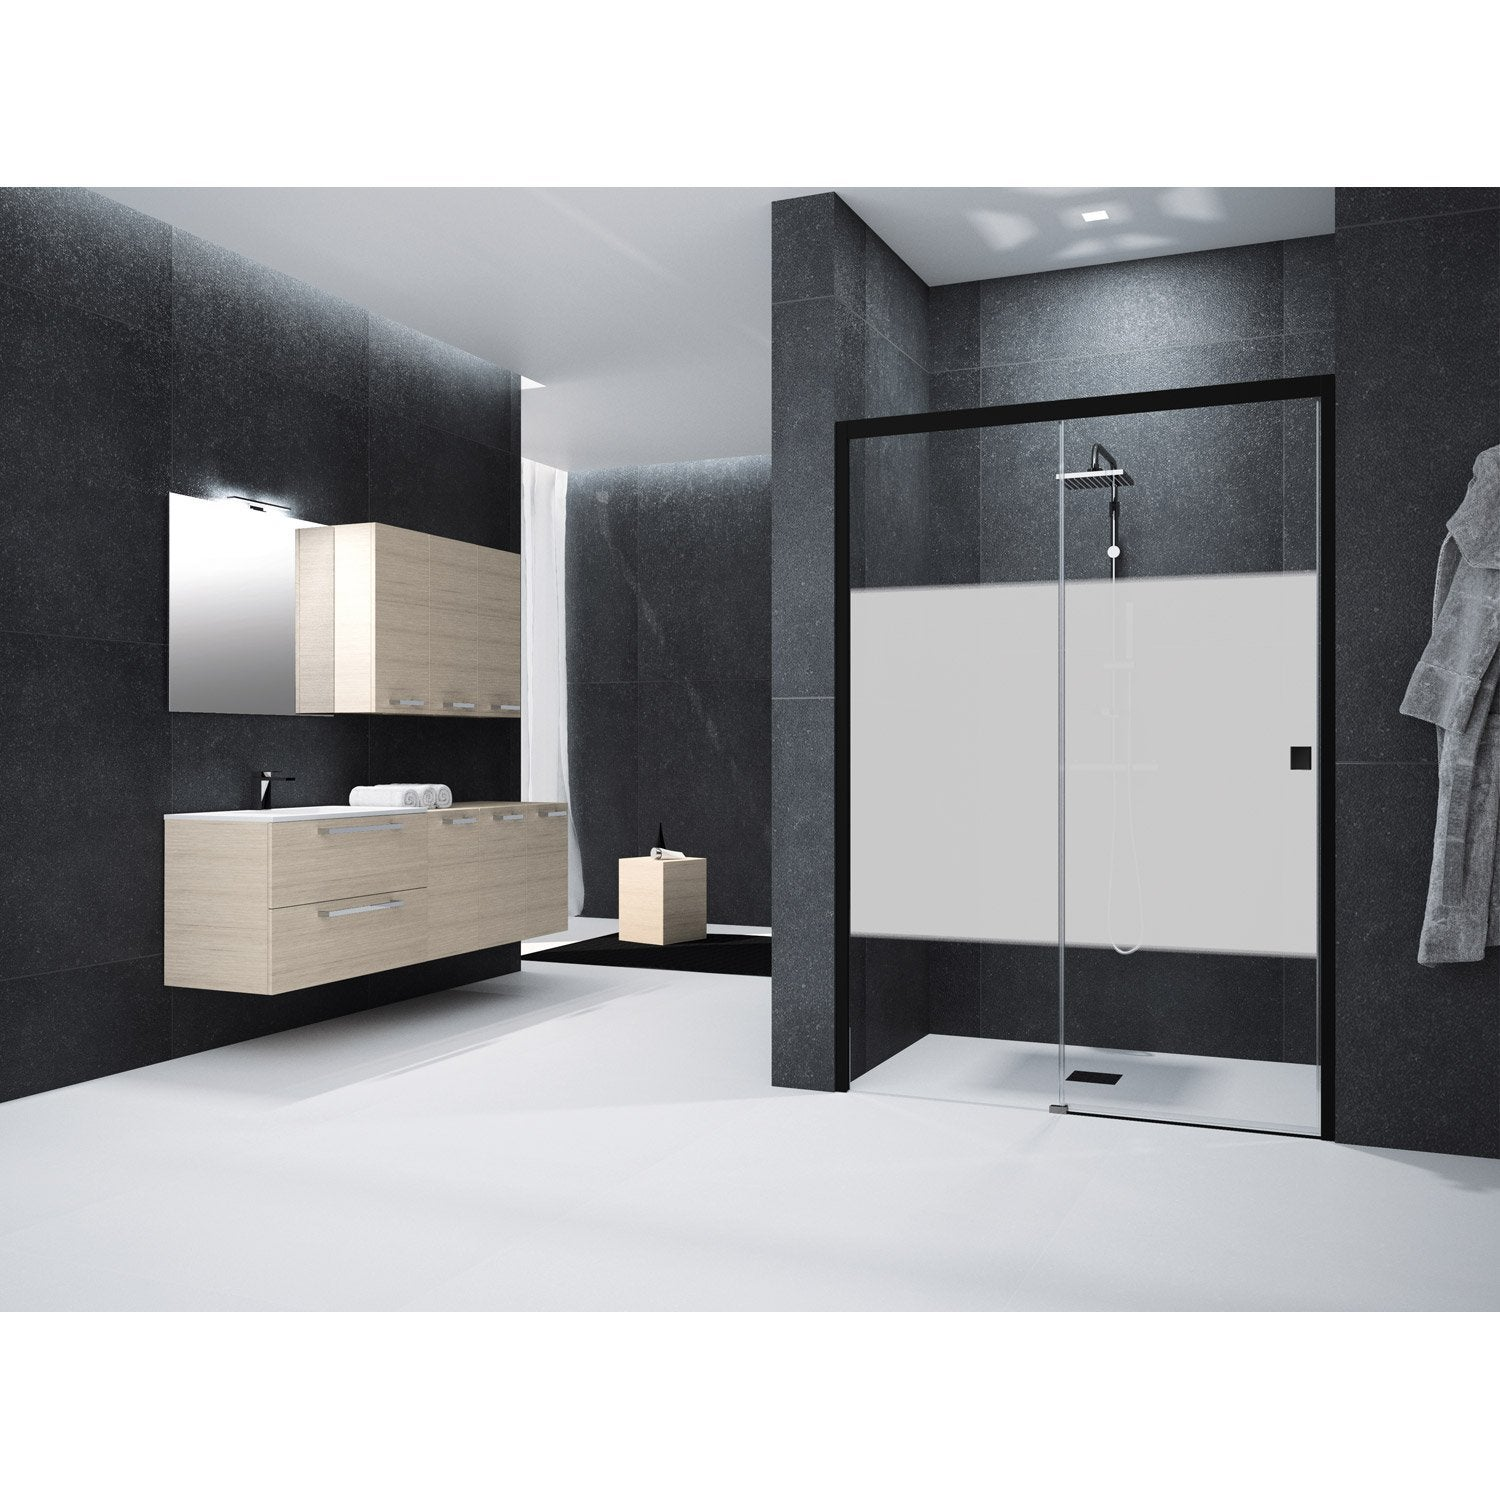 porte de douche coulissante 140 cm s rigraphi neo leroy merlin. Black Bedroom Furniture Sets. Home Design Ideas